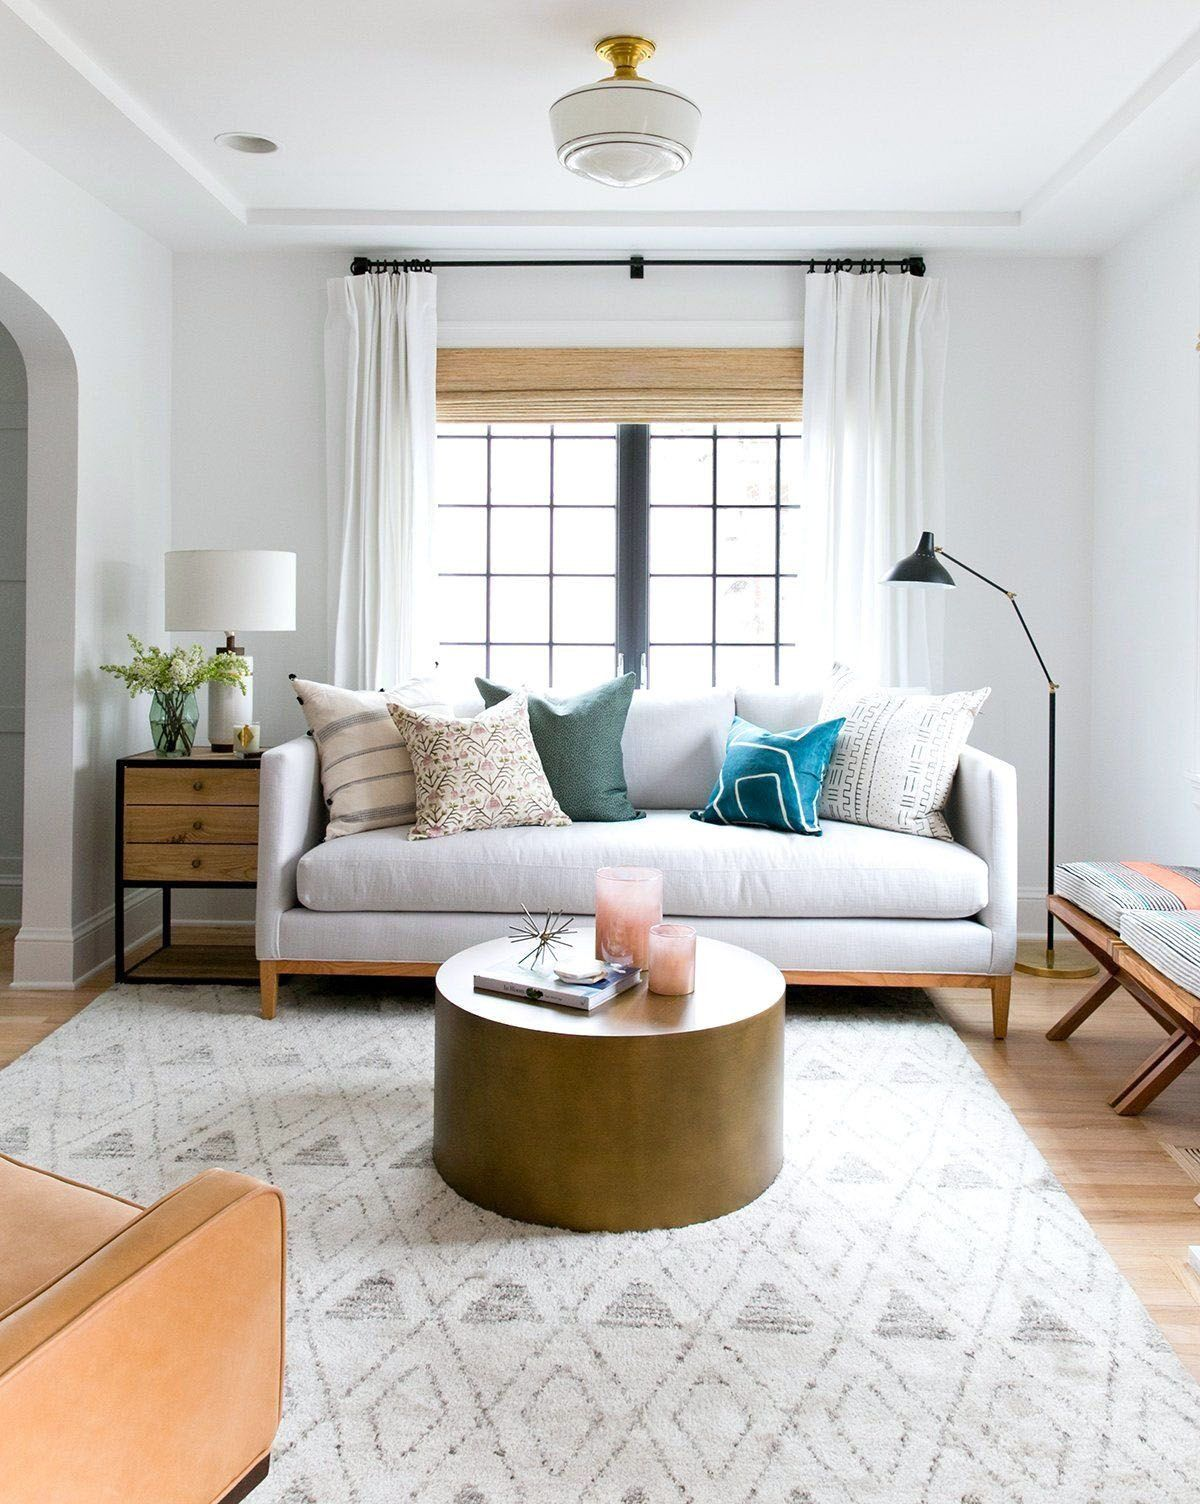 Pin On Living Room Small Image Ideas